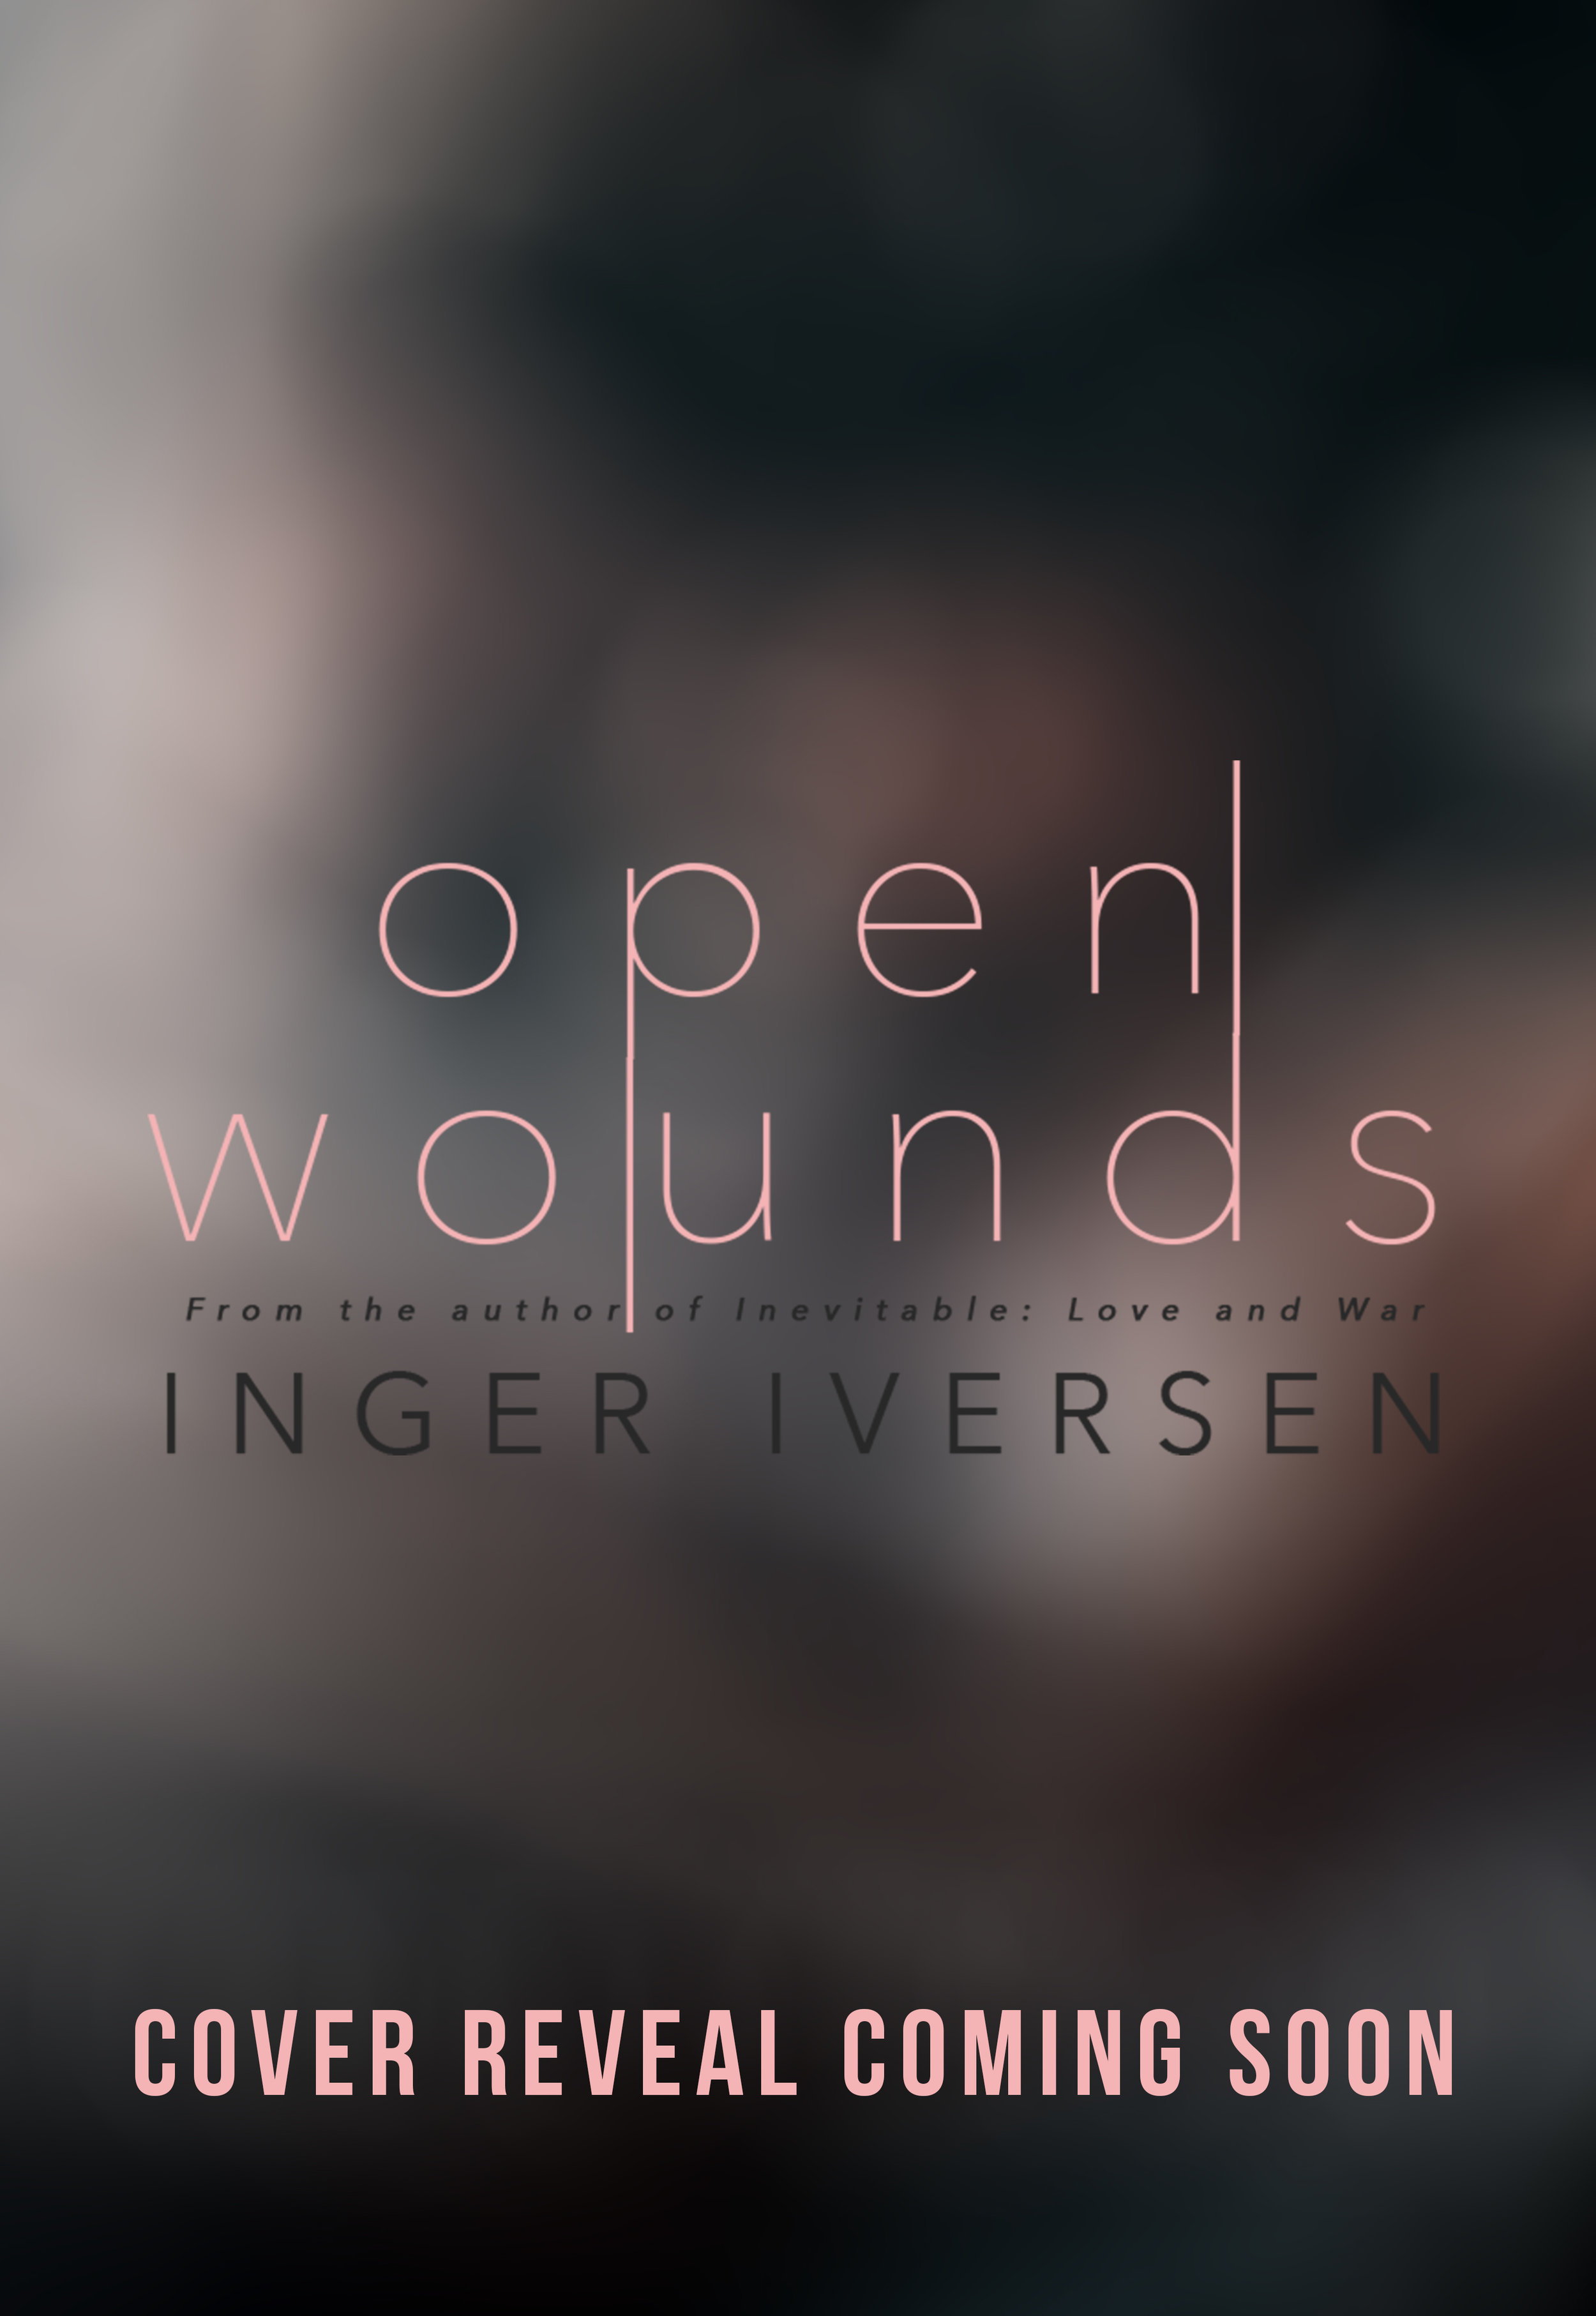 coverrevealsoon-OPEN-WOUNDS-EBOOK copy.jpg